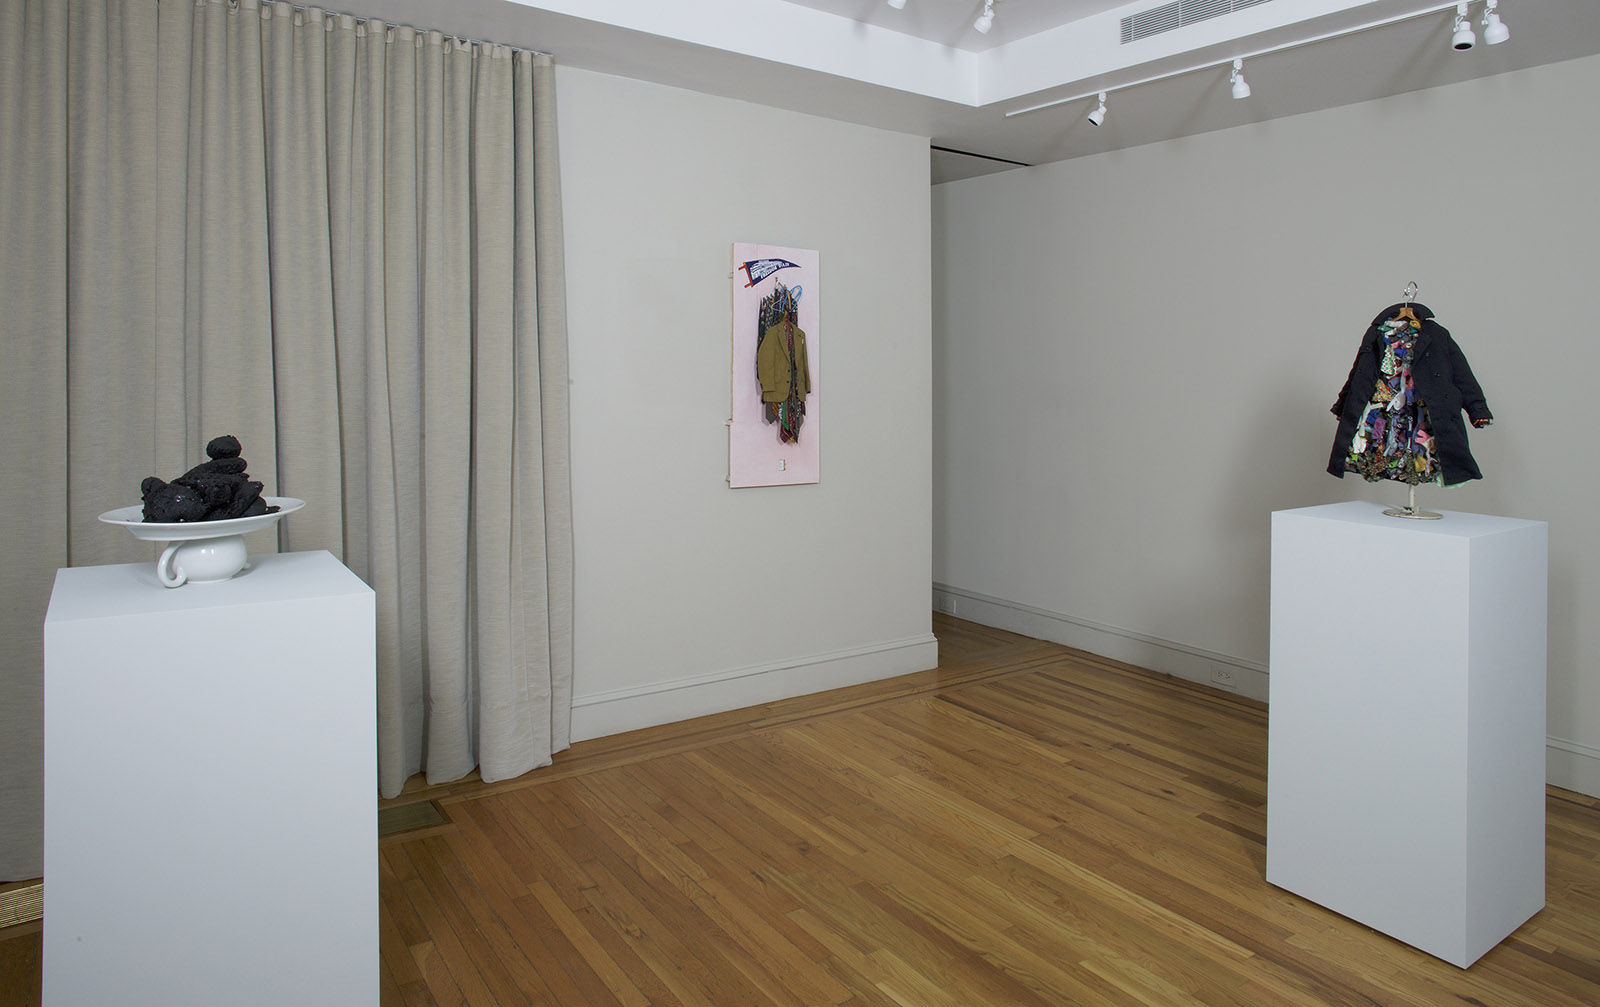 Charles LeDray: Tar Bears (1991), Freedom Train (2013–2015), and Overcoat (2004), on view at the Craig Starr Gallery